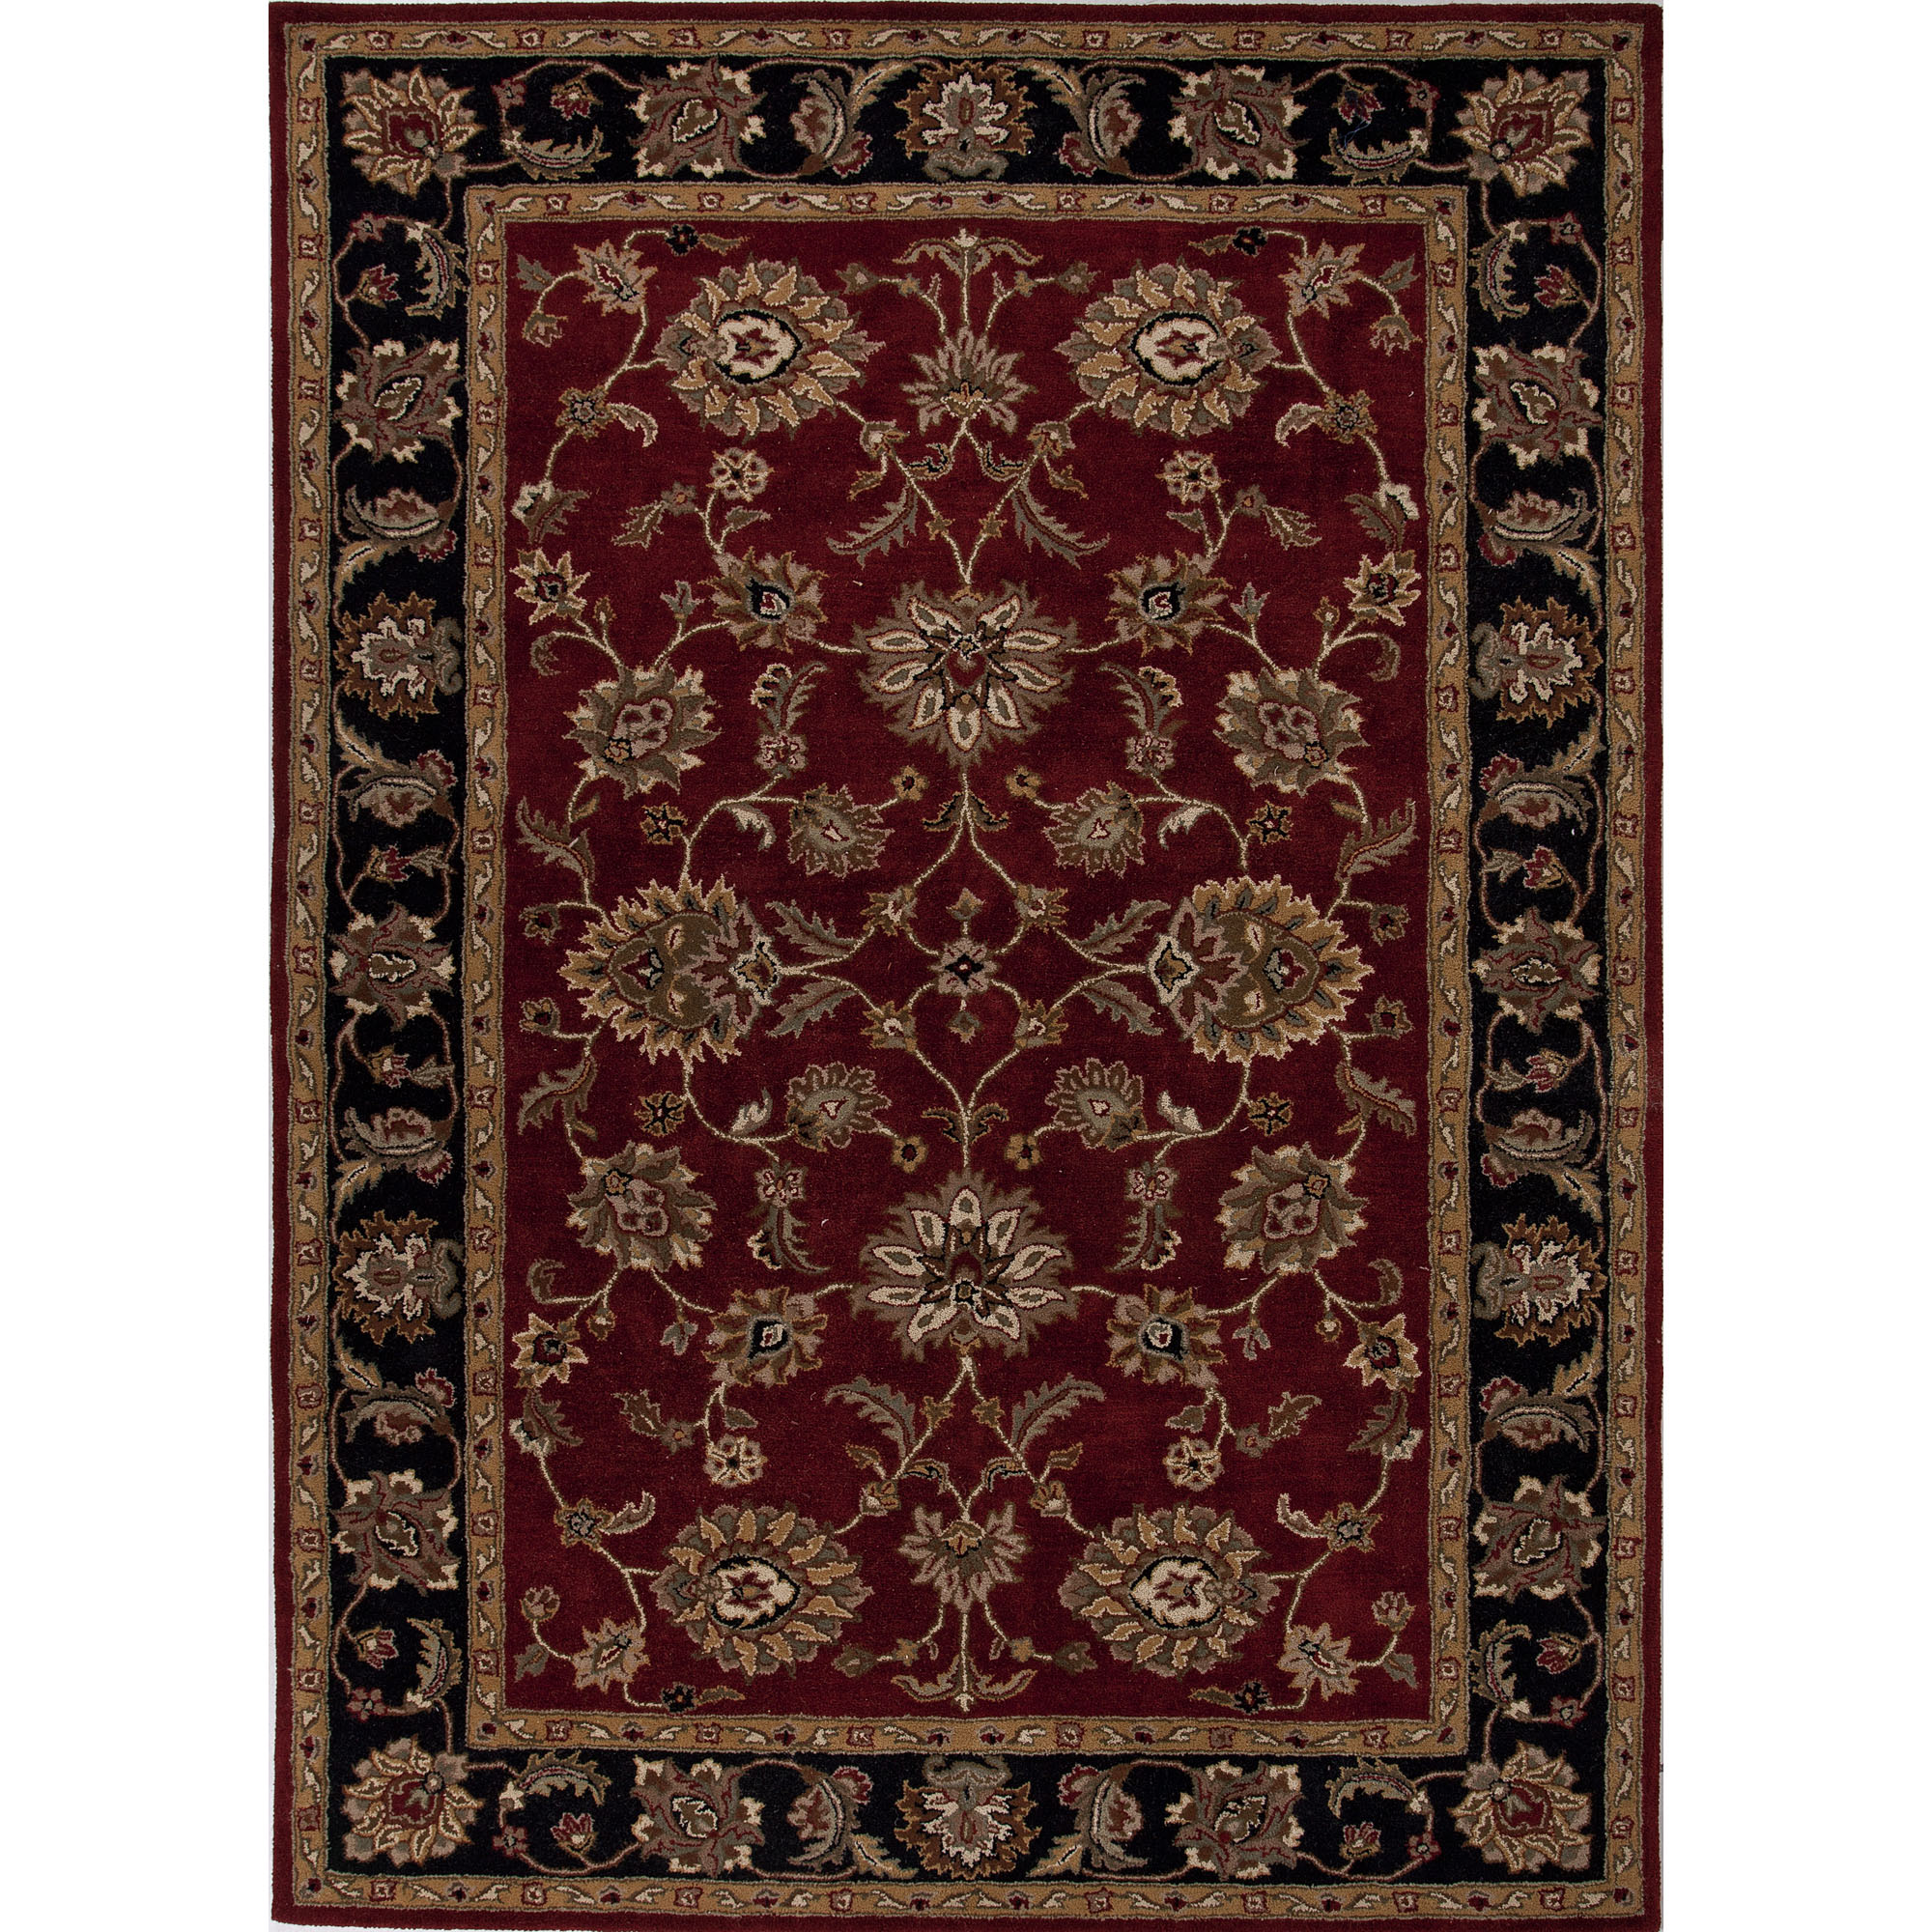 Mythos 10 x 14 Rug by JAIPUR Living at Malouf Furniture Co.